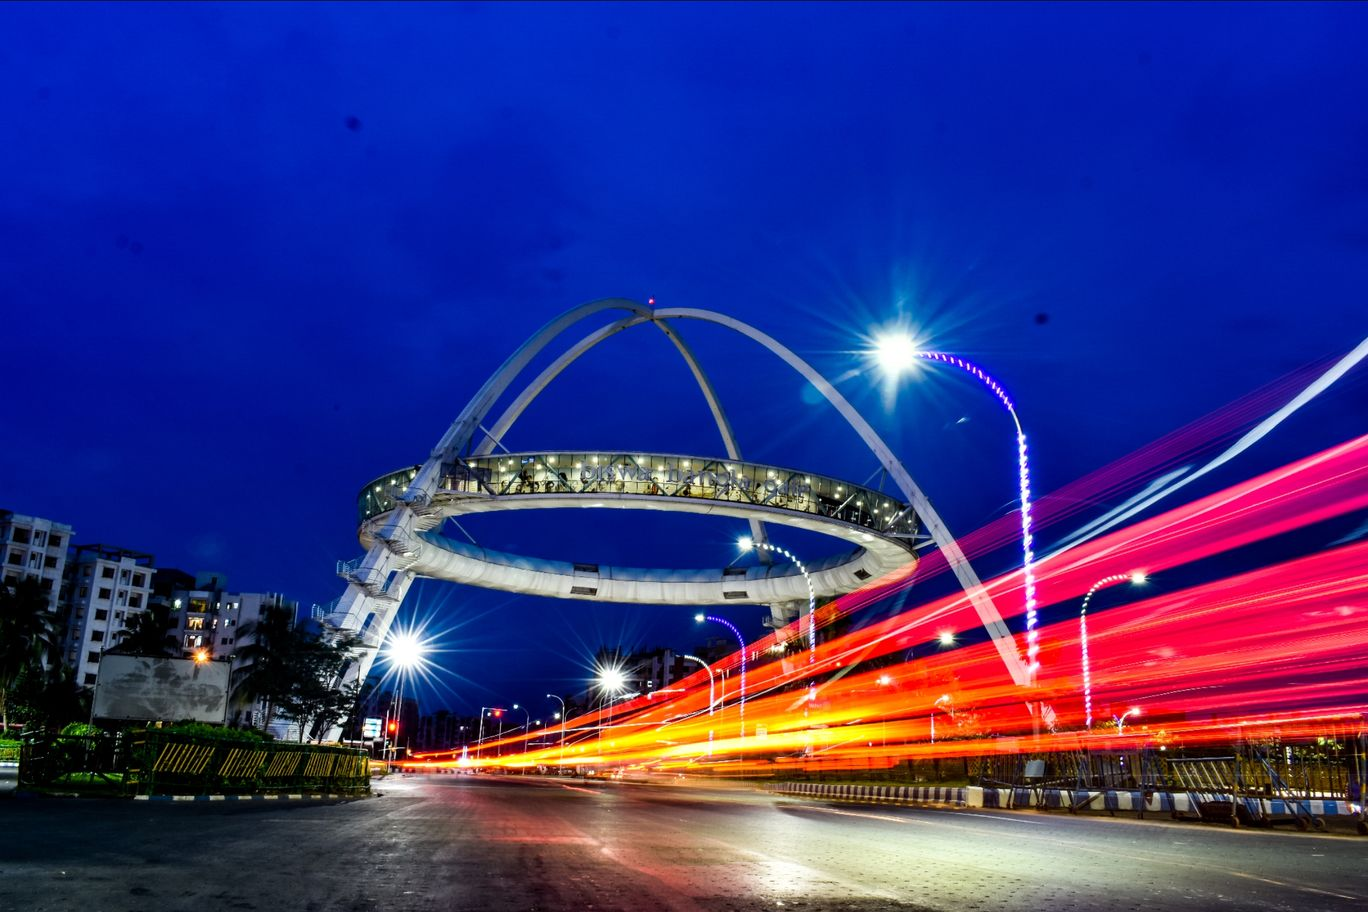 Photo of Biswa Bangla Gate By Sudipta Mondal